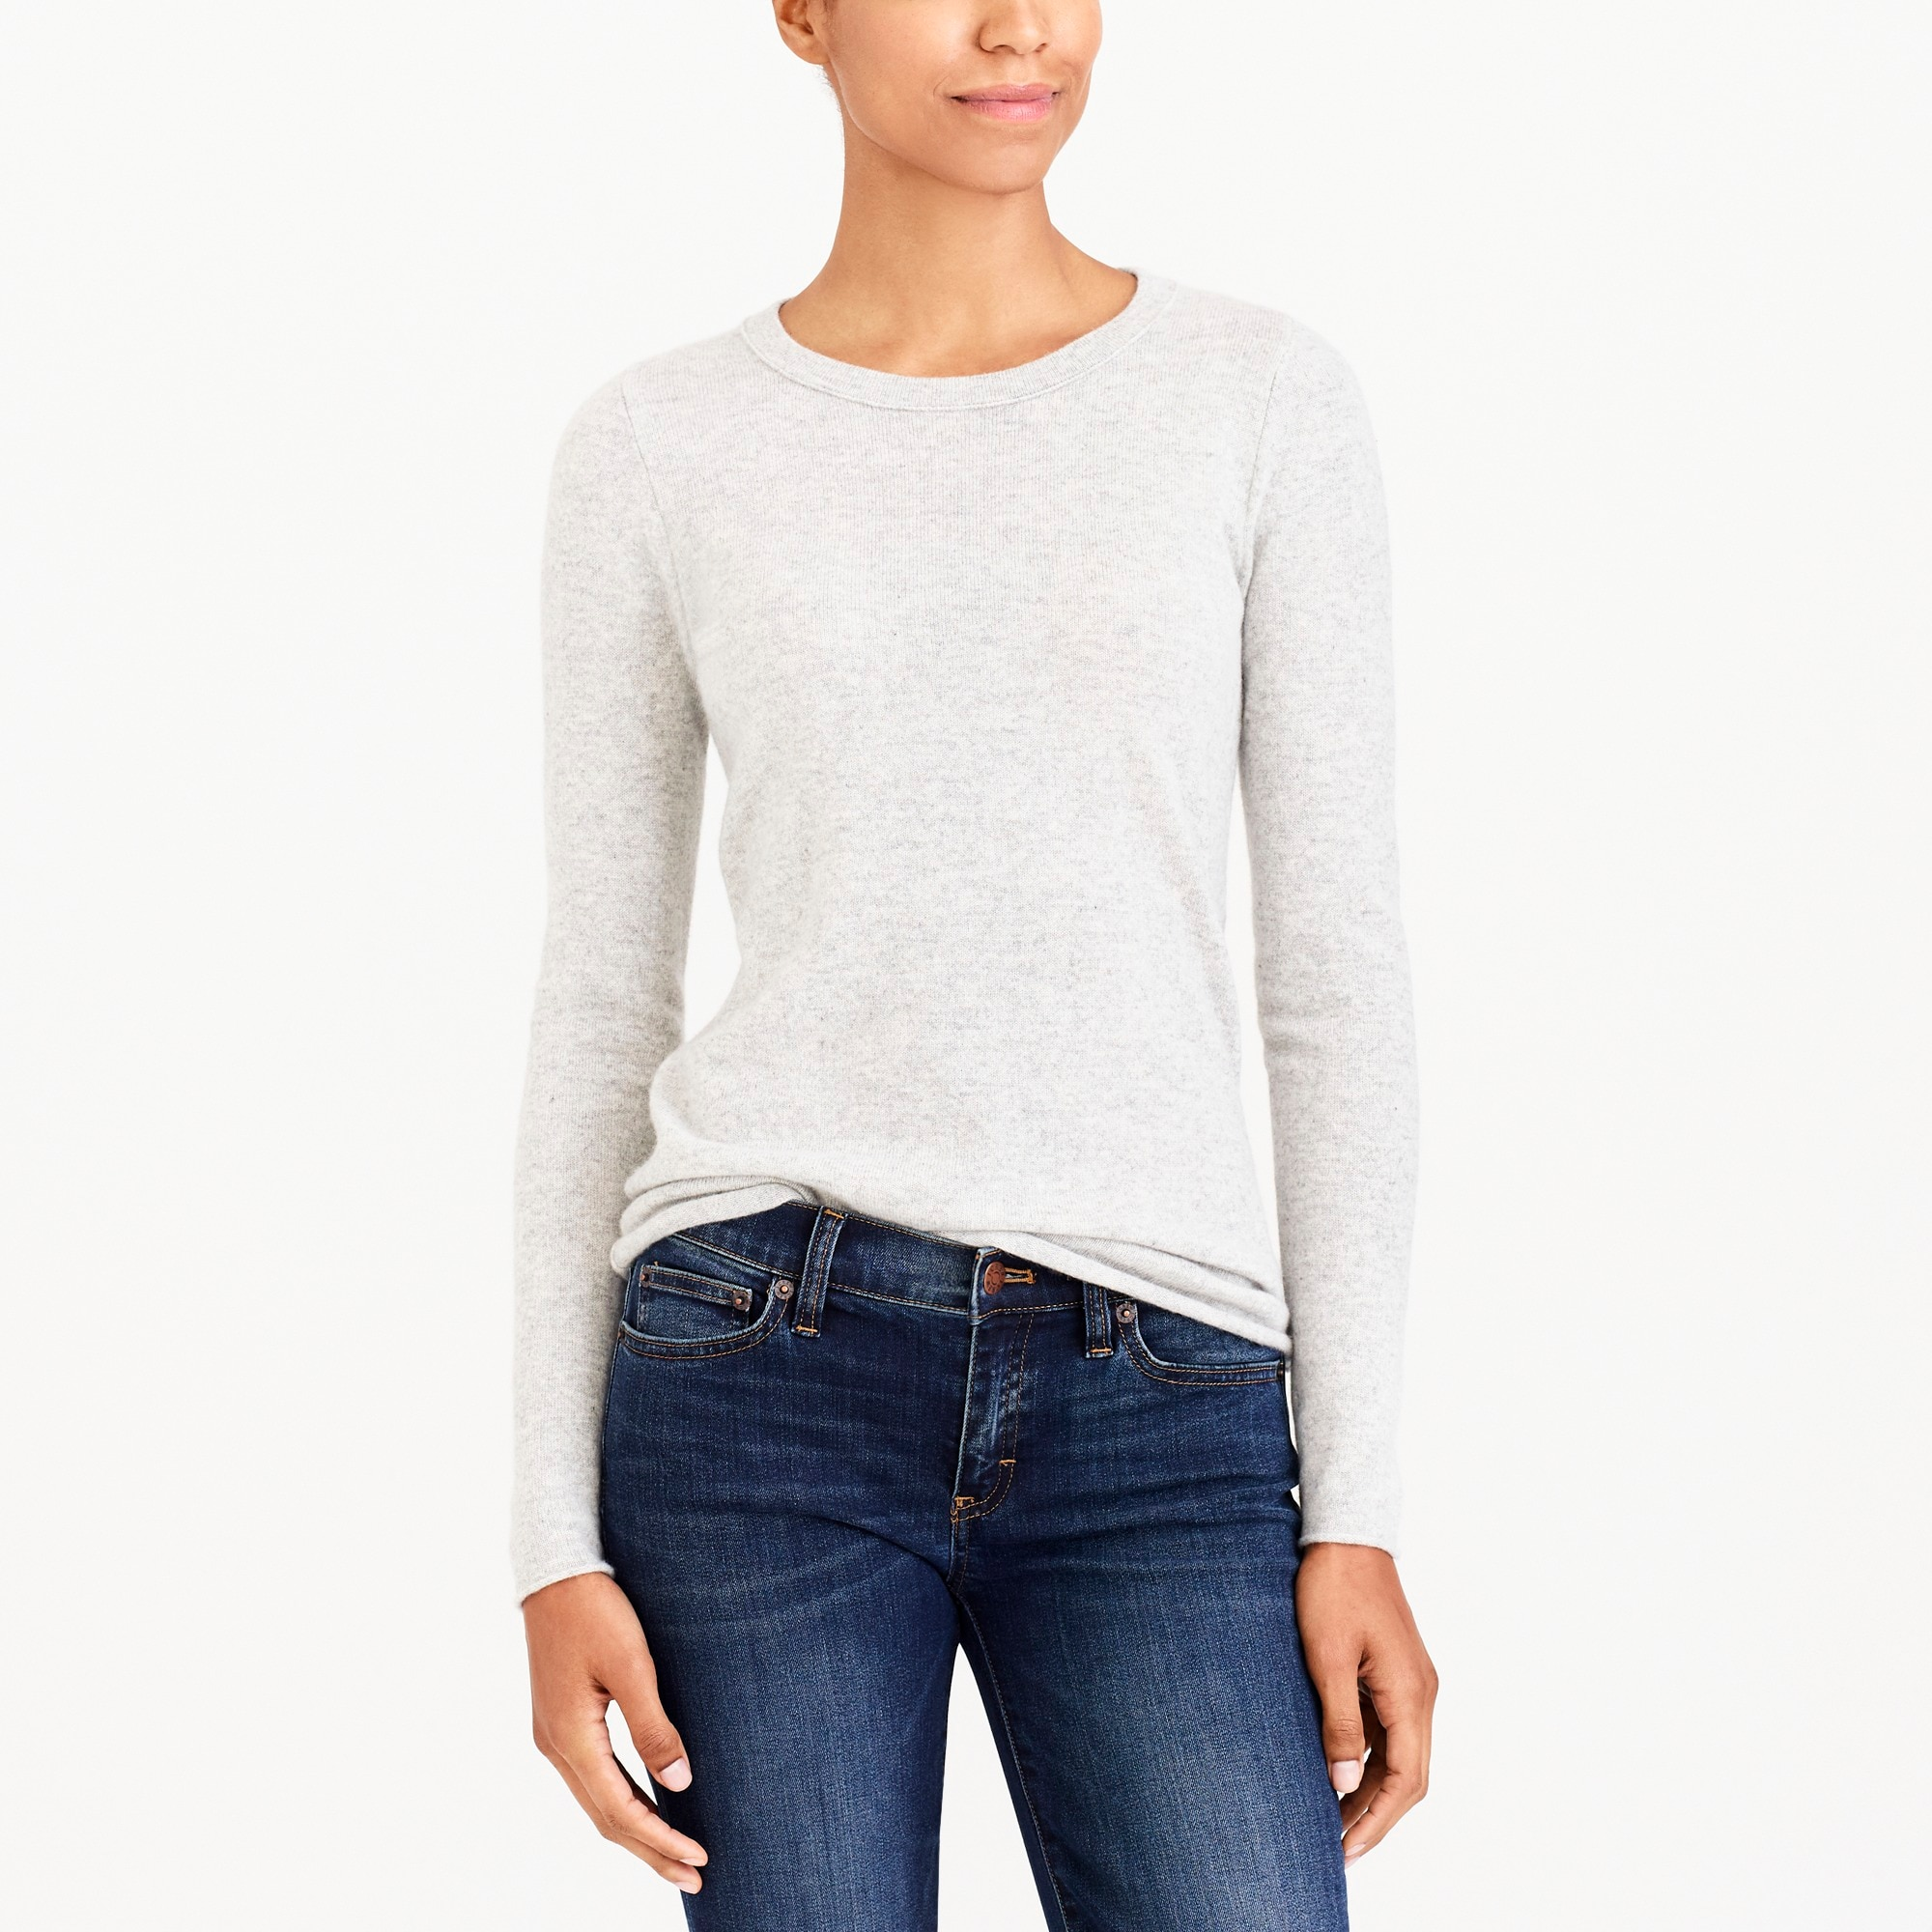 cashmere sweater : factorywomen pullovers